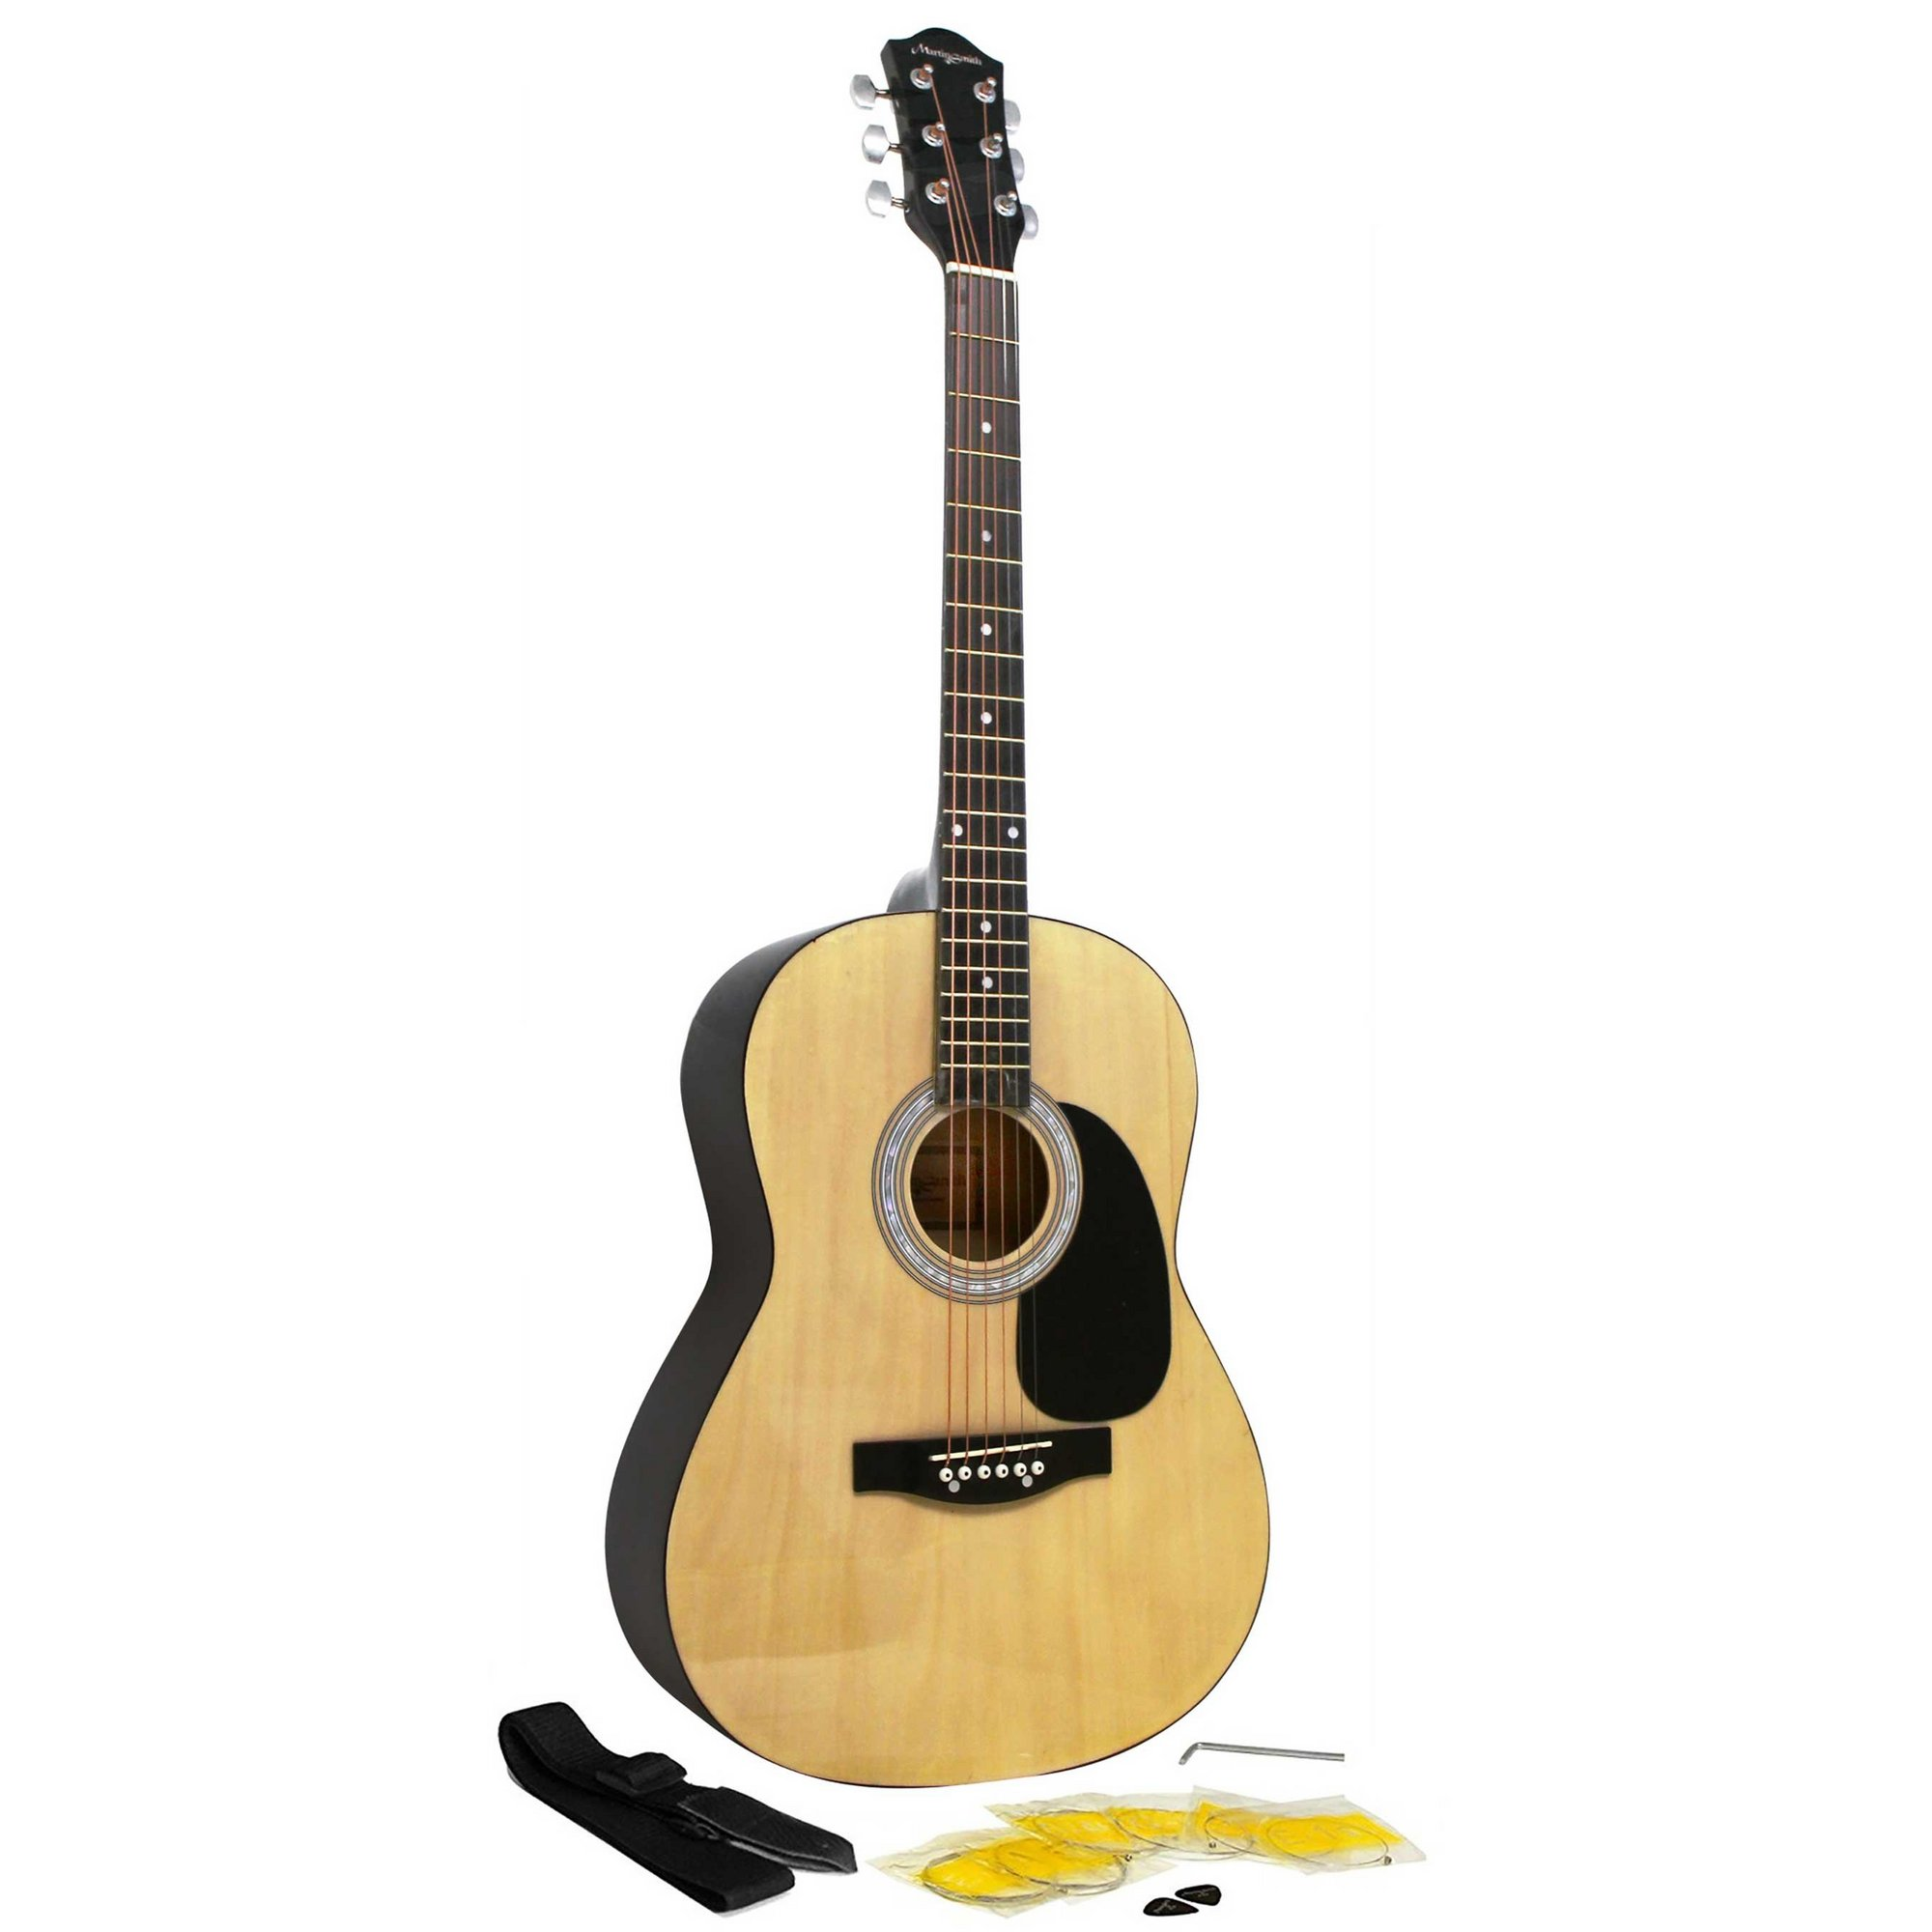 Image of Martin Smith Natural Full Size Guitar